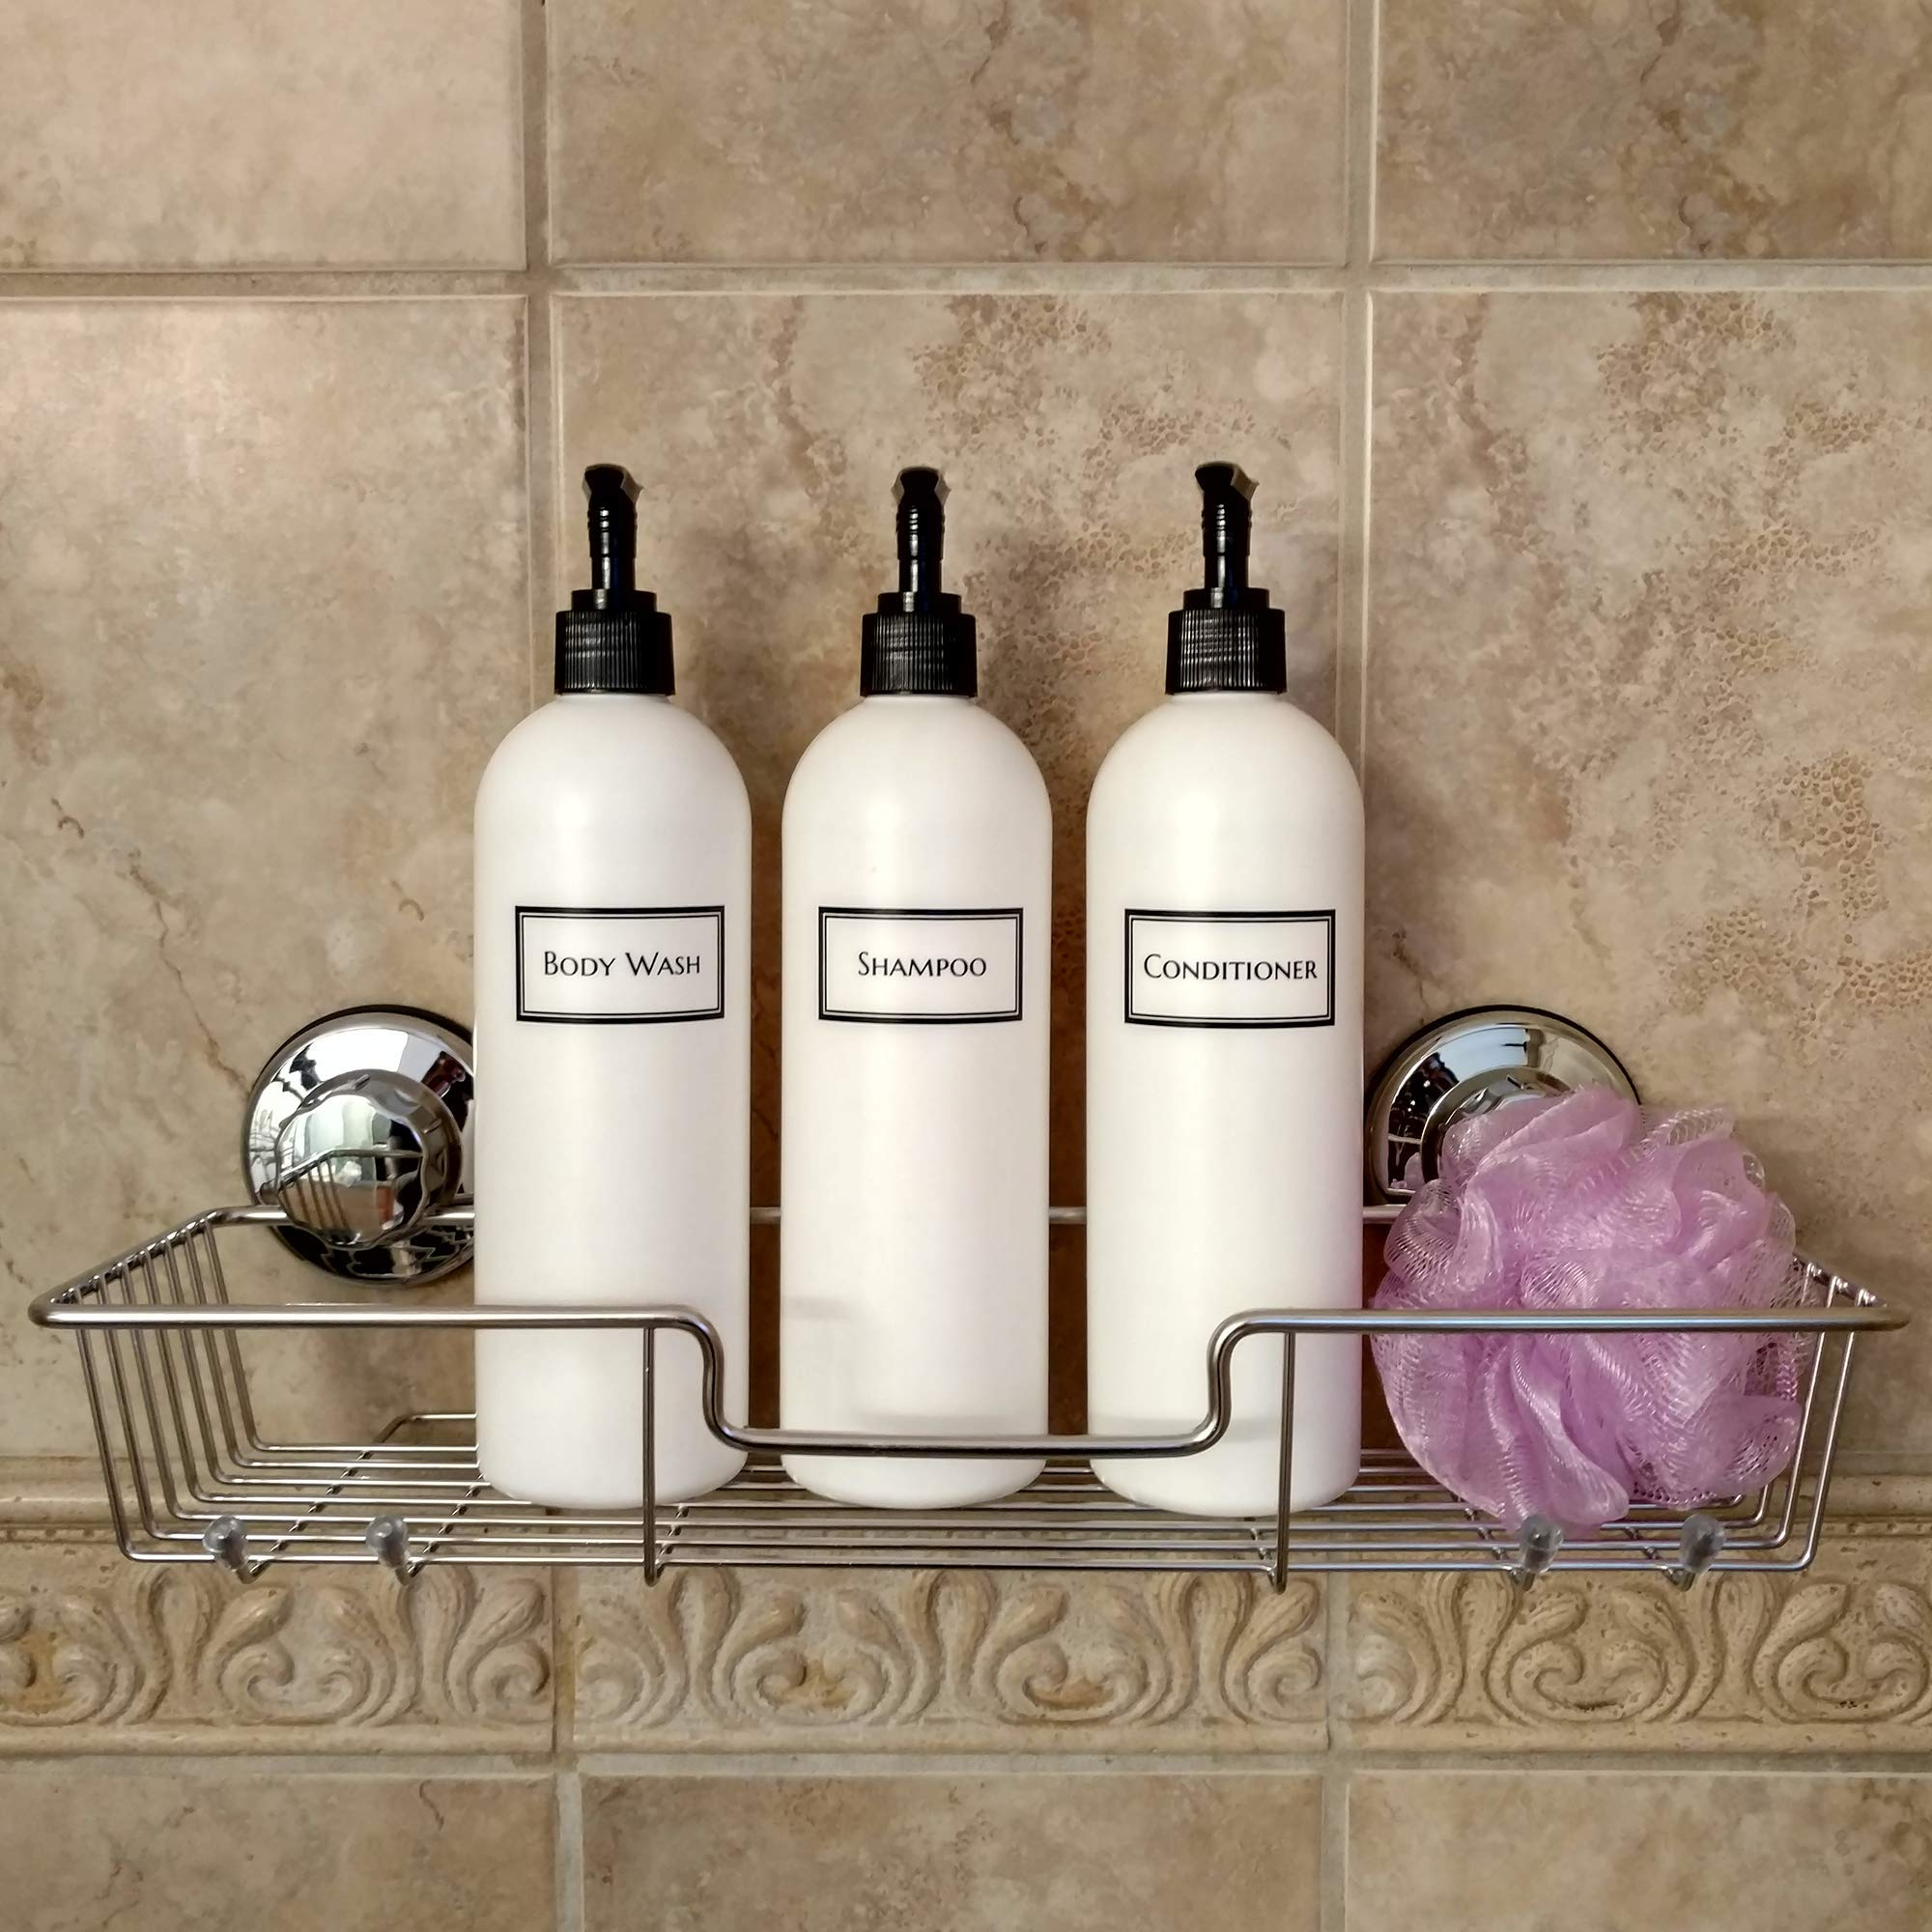 Artanis Home Silkscreened Empty Shower Bottle Set for Shampoo, Conditioner, and Body Wash, 16 oz 3-Pack, White (Black Pumps) by Generic (Image #3)